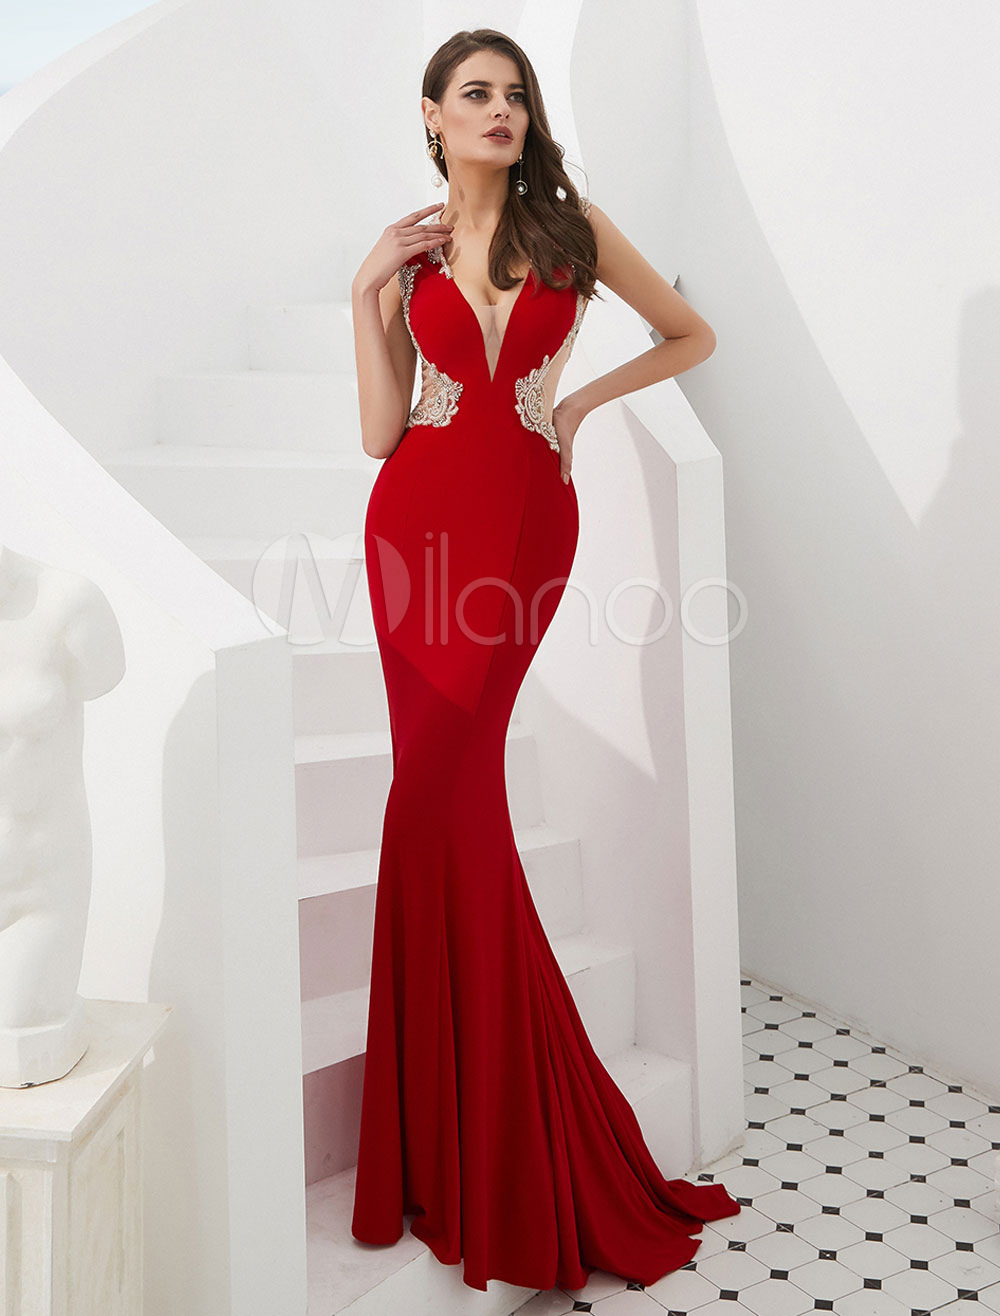 Abiti Da Sera Rossi.Abiti Da Sera Rossi Mermaid Luxury Sexy Prom Dress Abiti Da